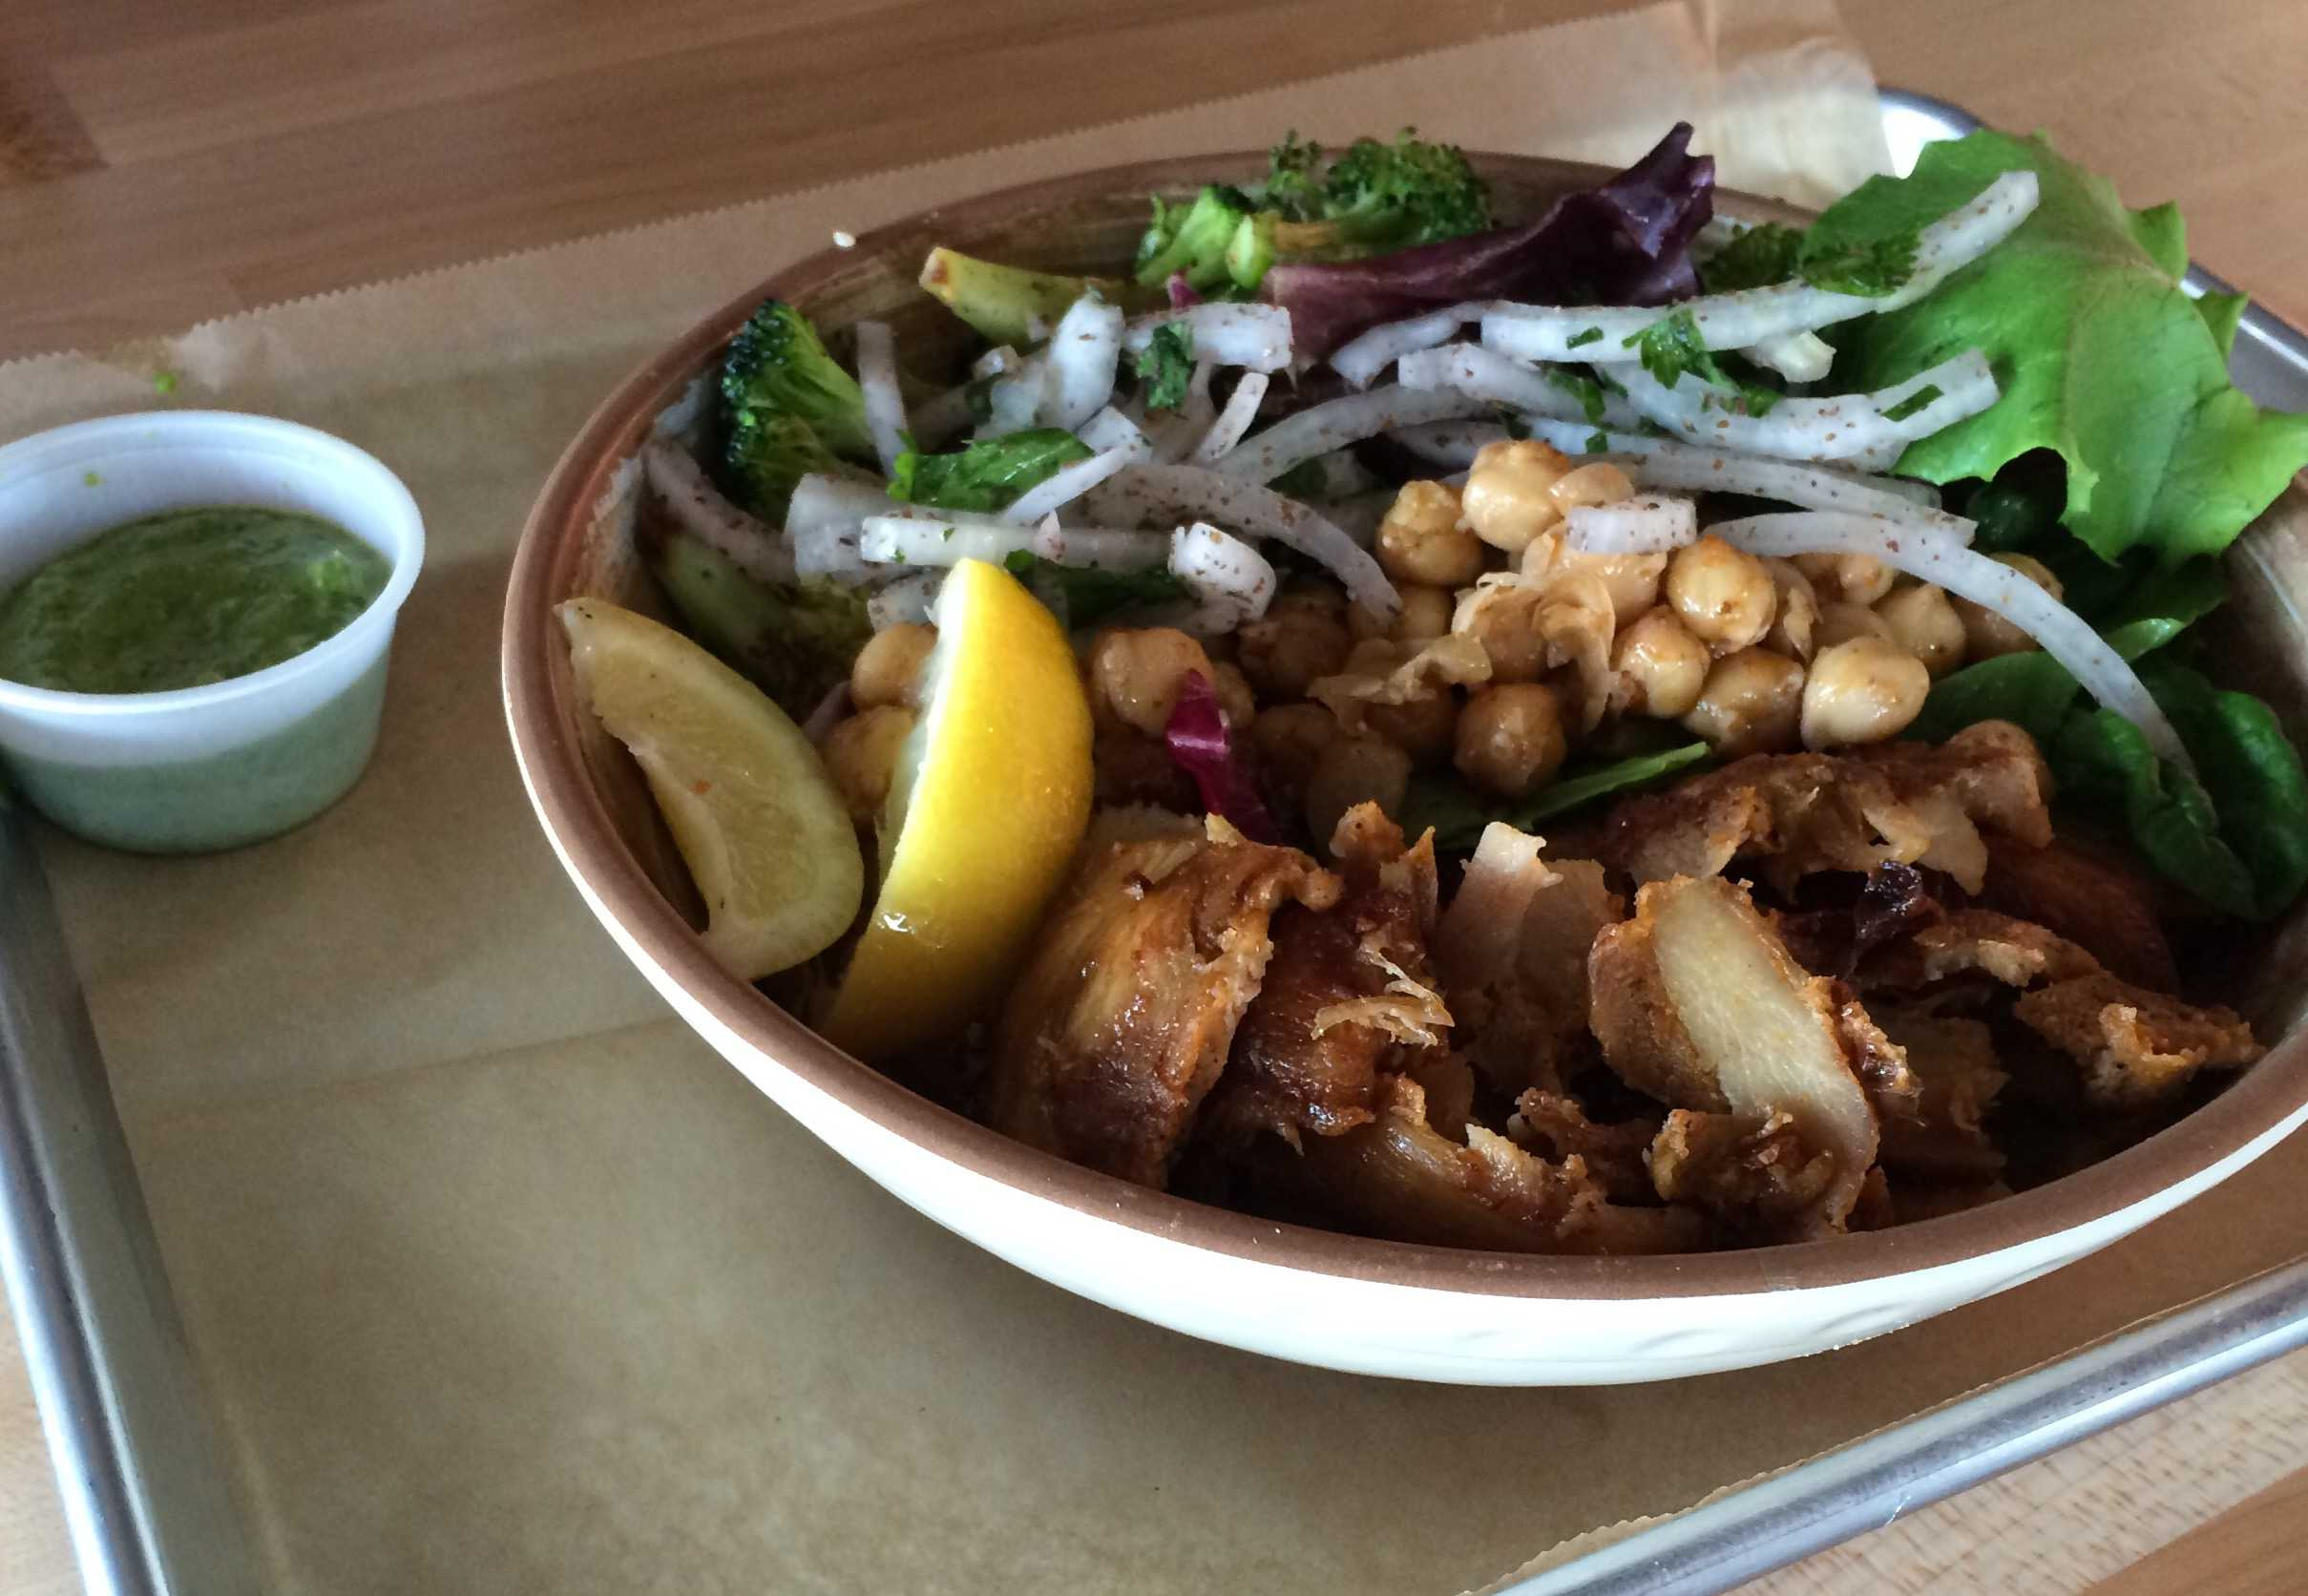 The vegetable chicken bowl is a popular item at VERTS. (Erin Eubanks / The Talon News)